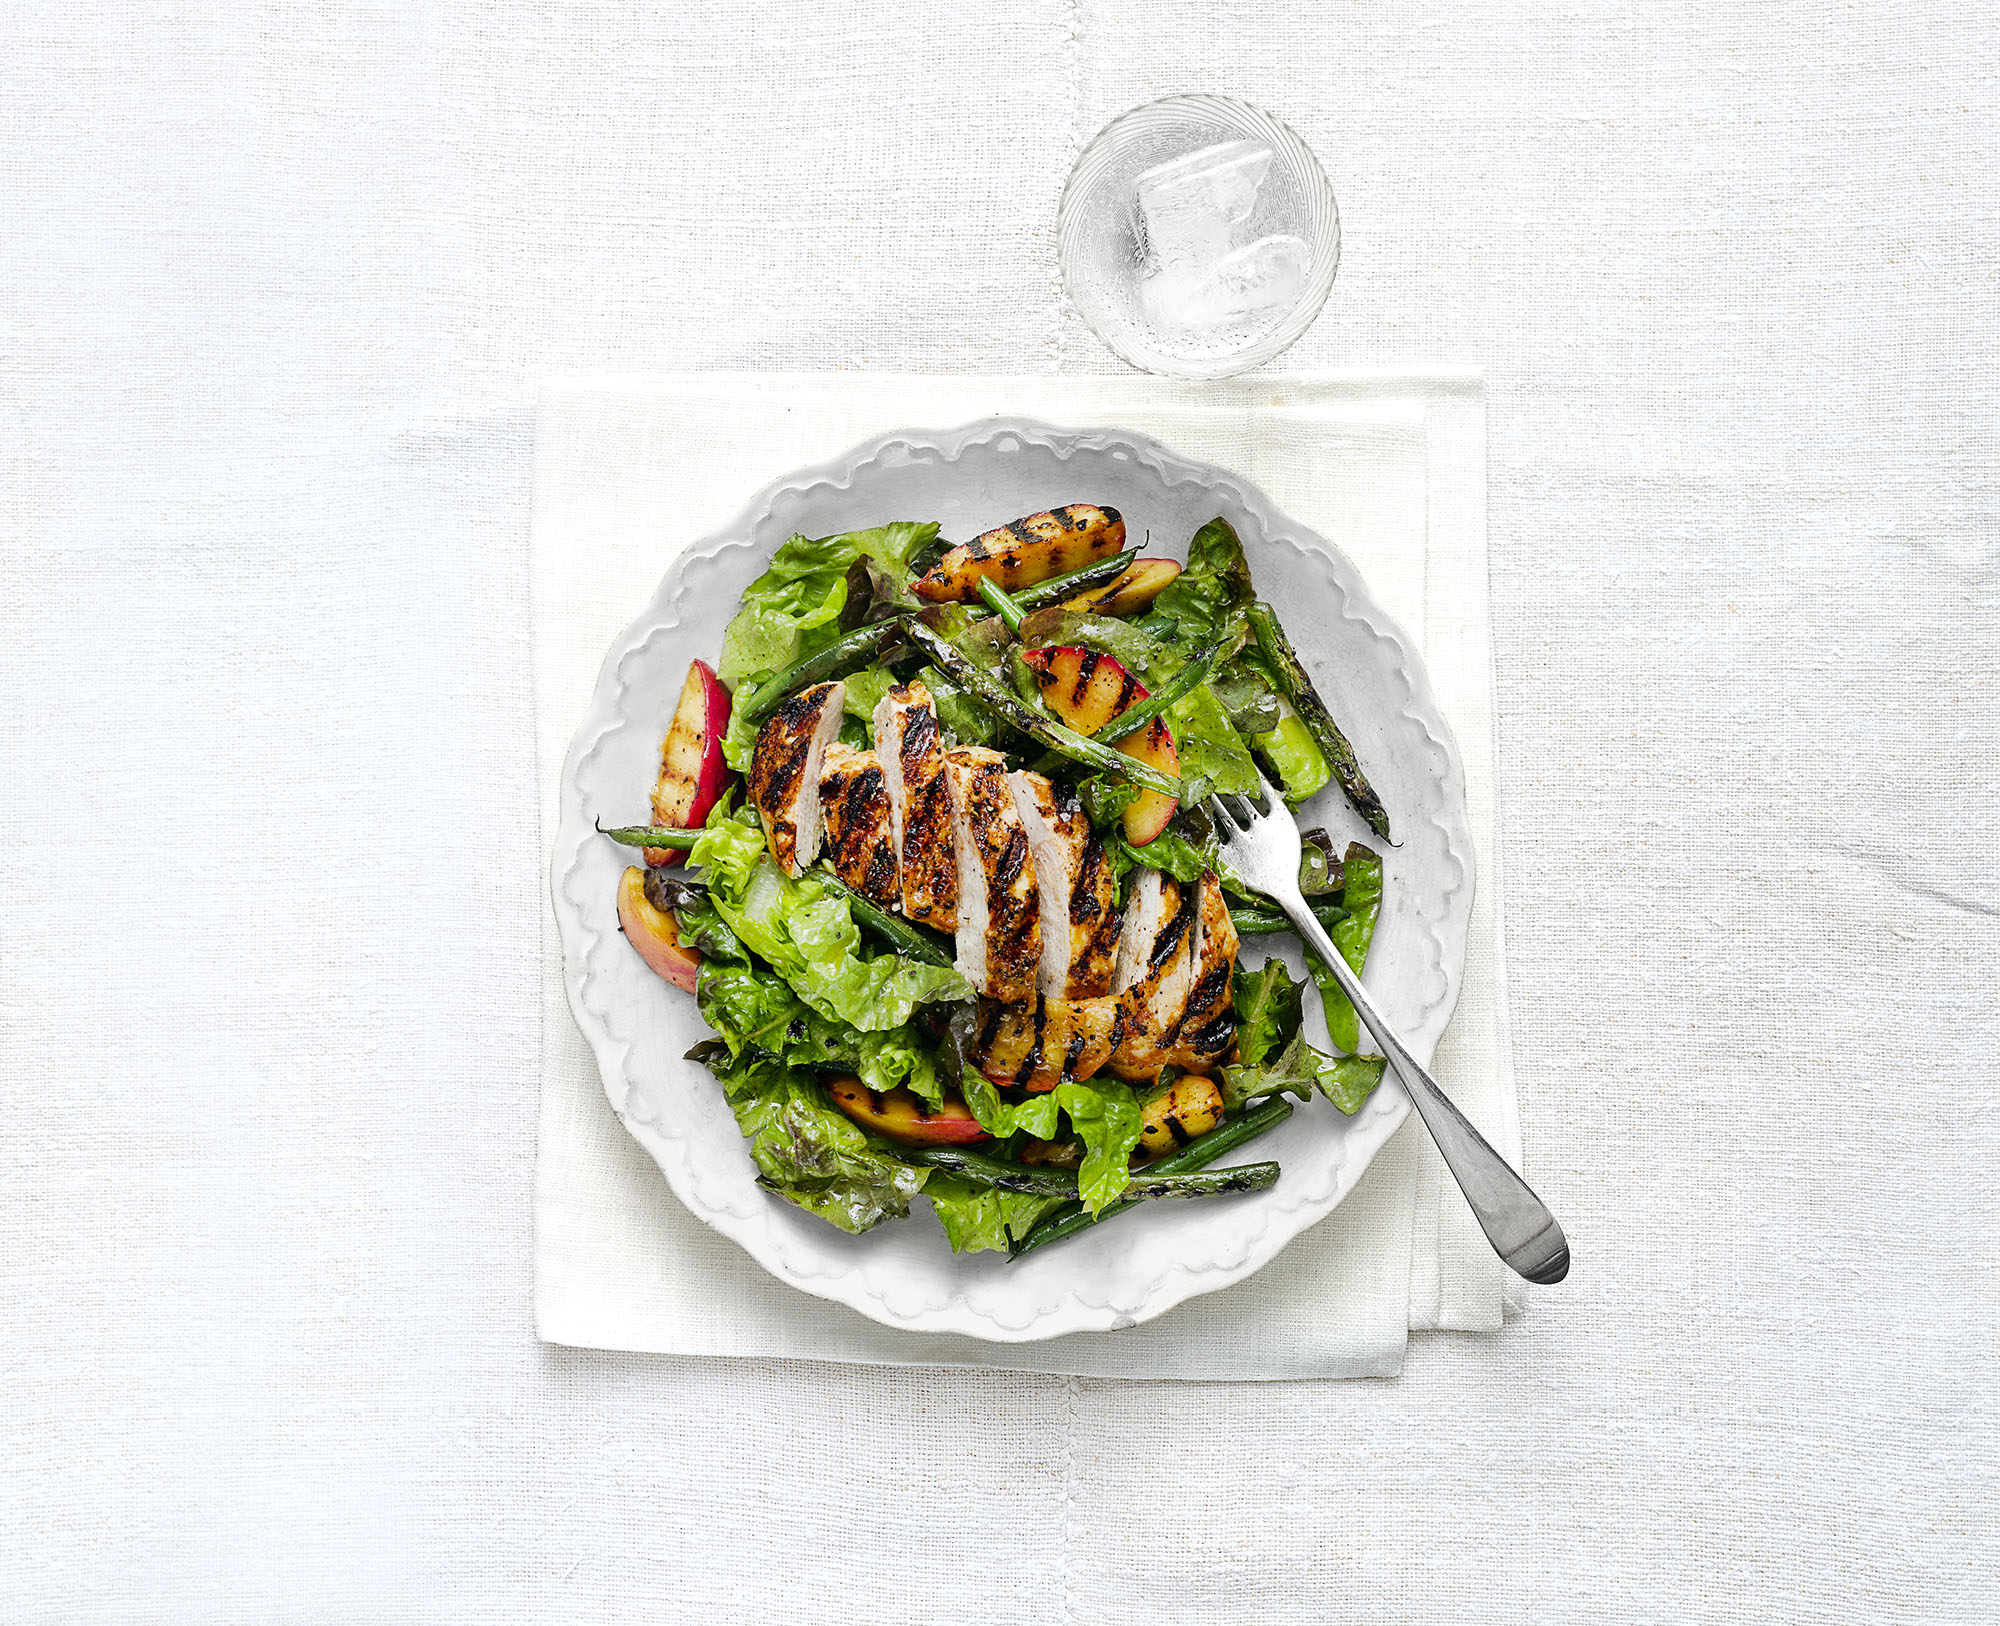 Grilled Curried Chicken Breasts With Peach and Green Bean Salad